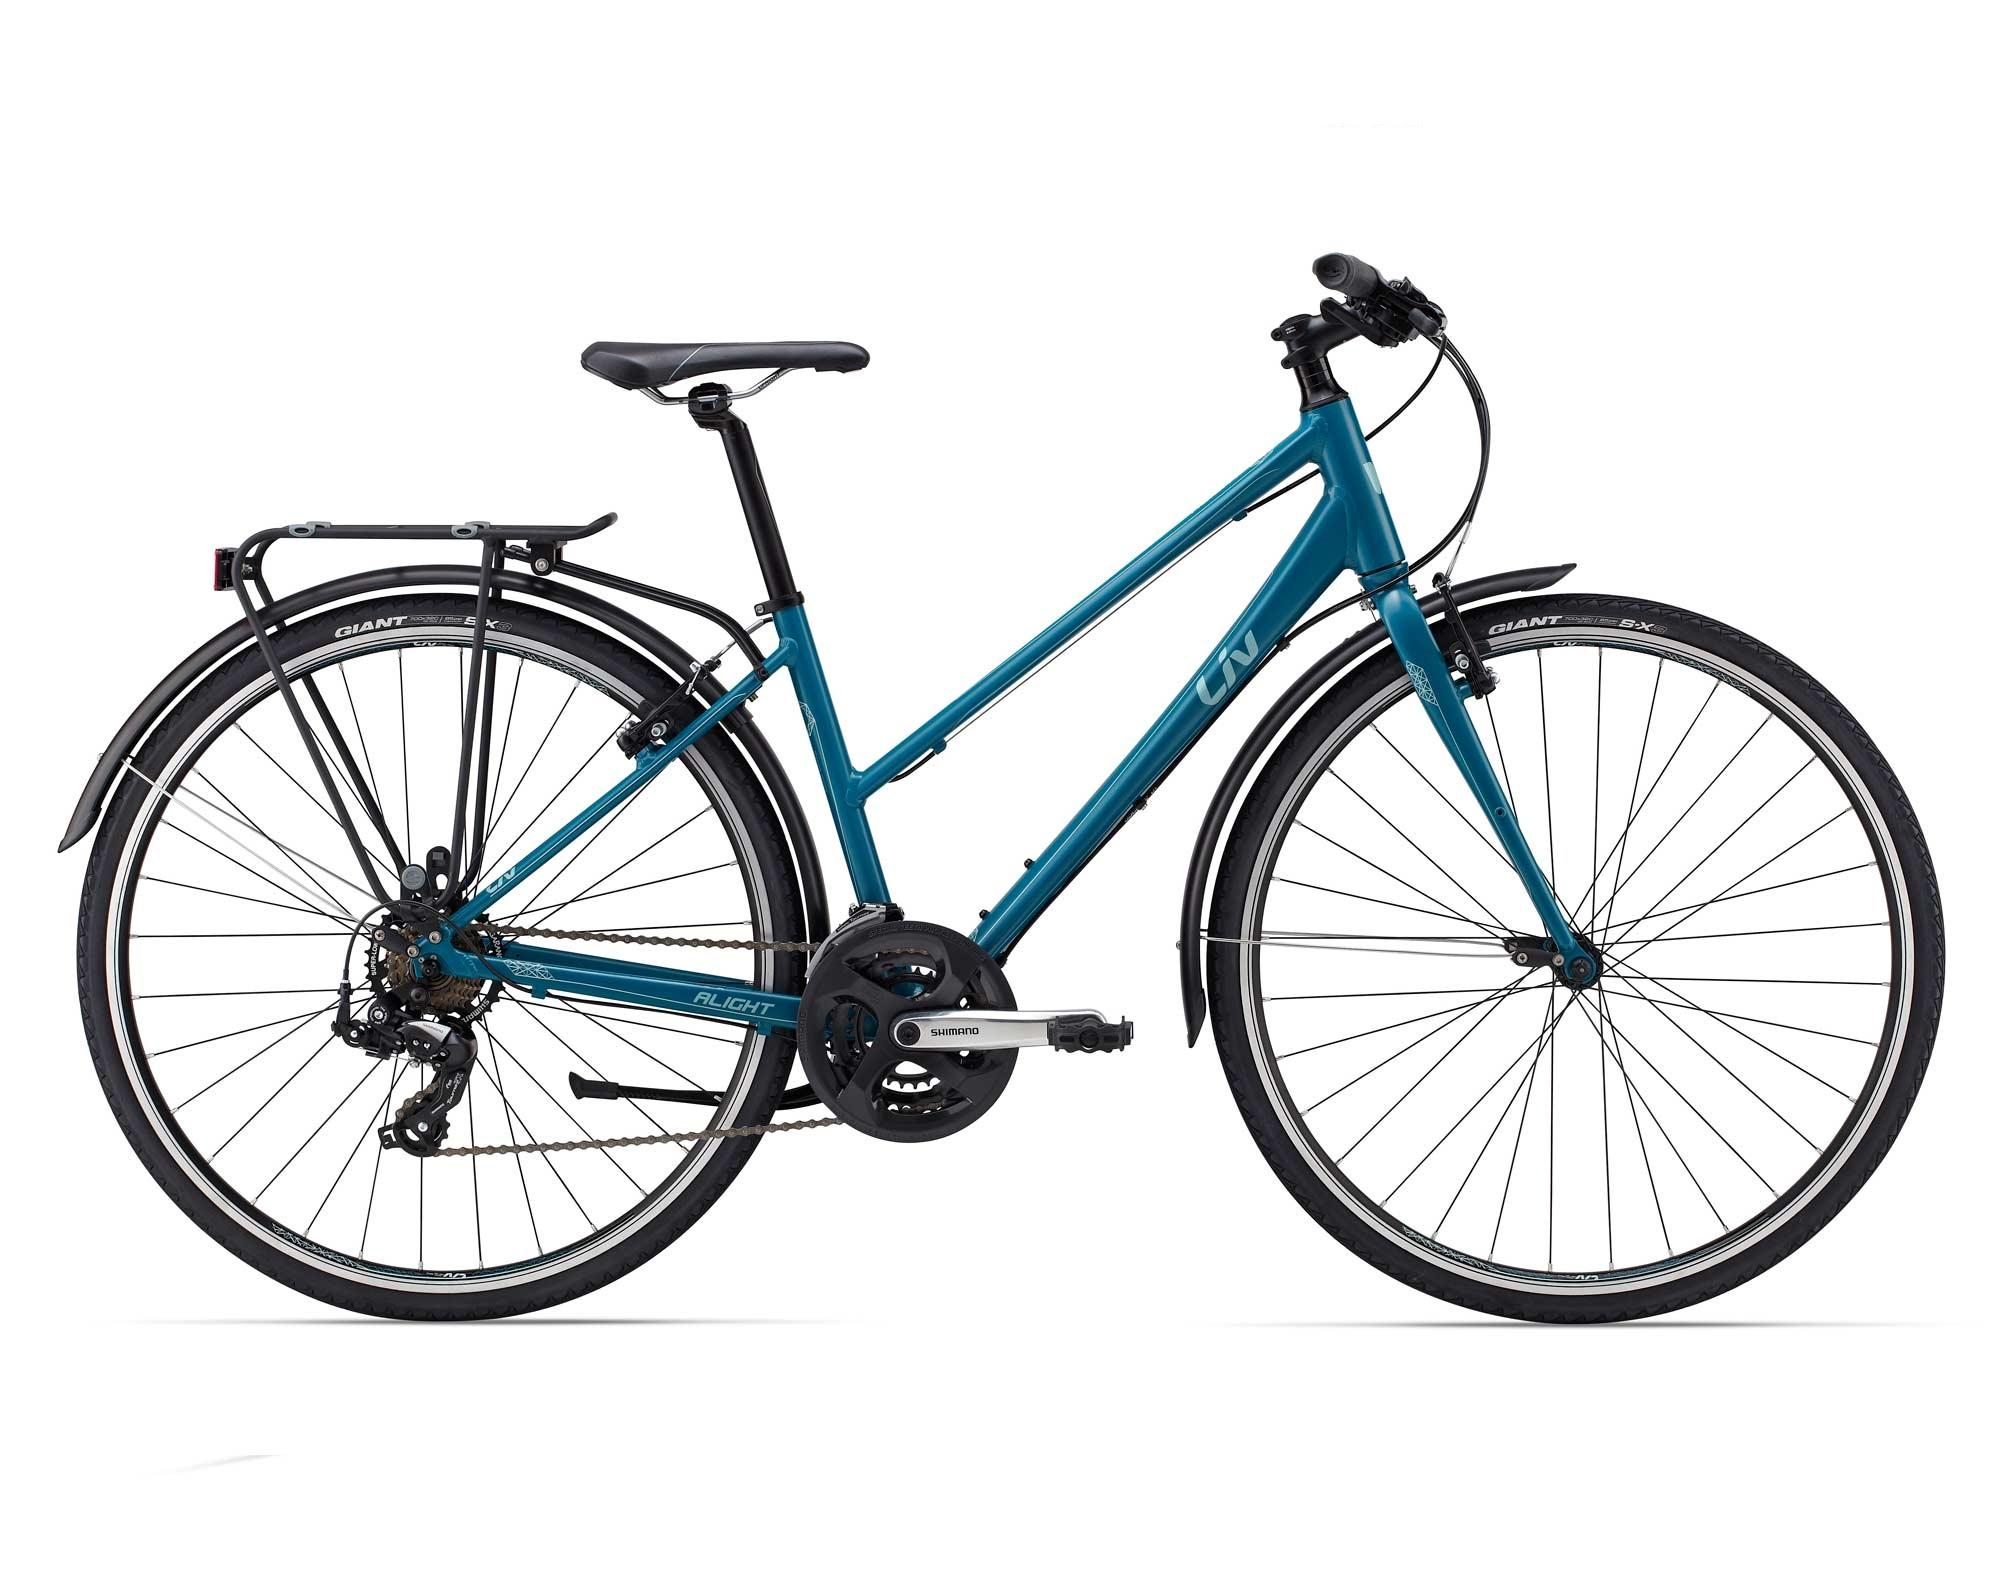 2015 Giant Bikes Usa Alight City